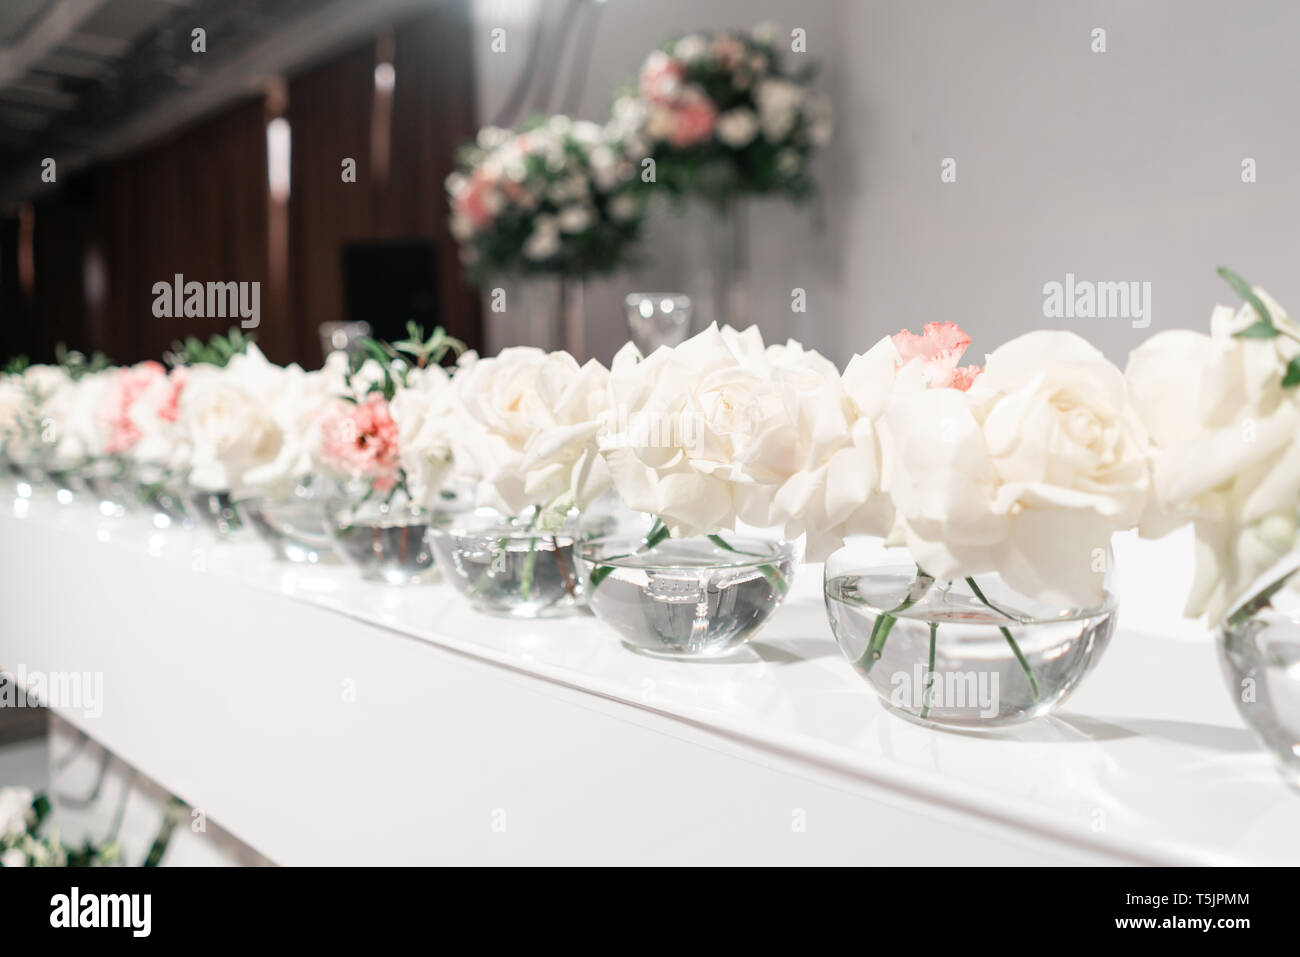 Small Flower Arrangements In Ball Glass Vases The Table Of The Newlyweds Interior Of Restaurant For Wedding Dinner Ready For Guests Catering Stock Photo Alamy